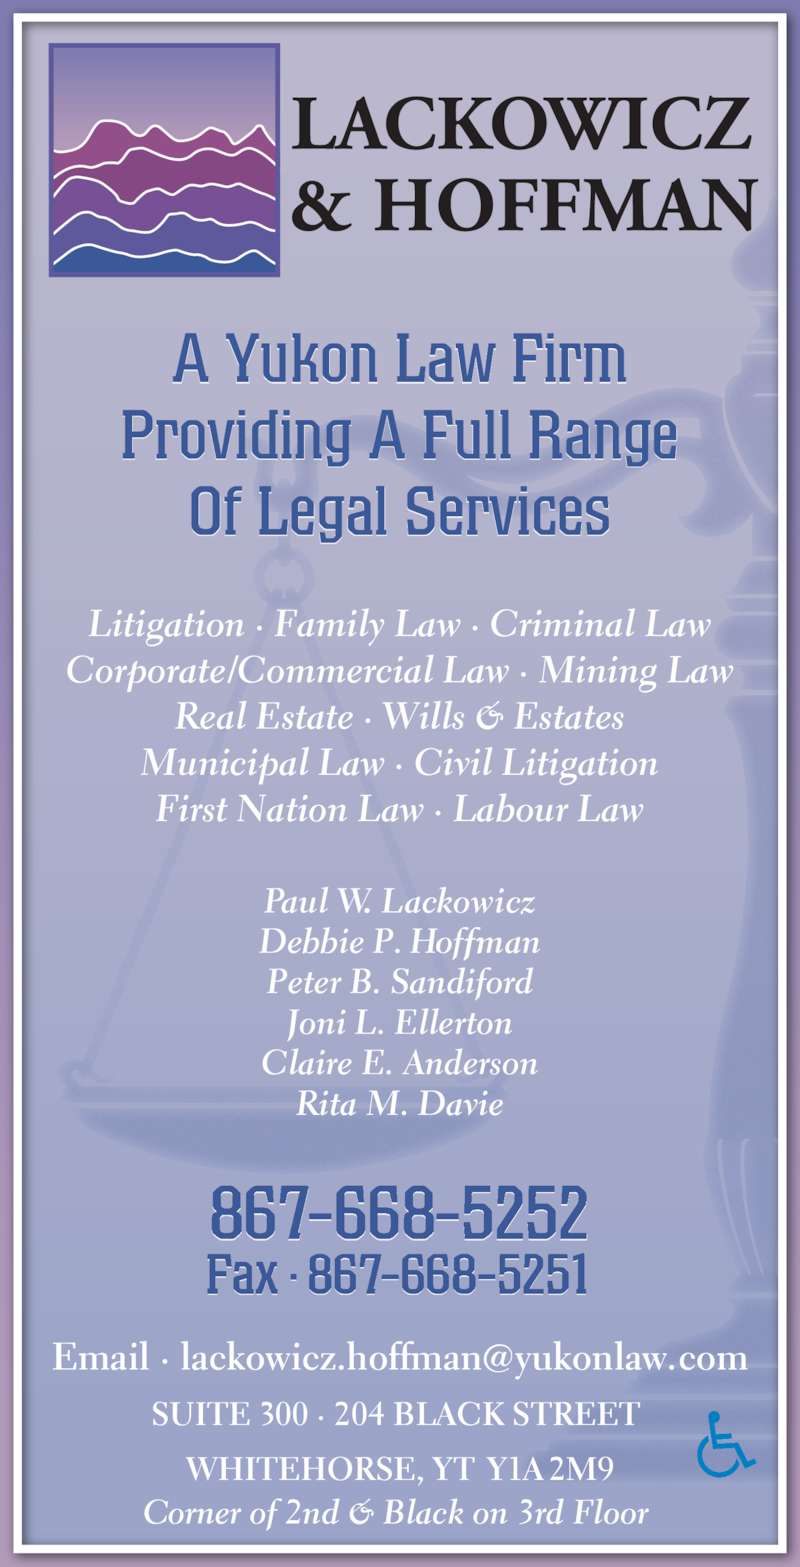 Lackowicz & Hoffman (8676685252) - Display Ad - Litigation ? Family Law ? Criminal Law Corporate/Commercial Law ? Mining Law Real Estate ? Wills & Estates Municipal Law ? Civil Litigation First Nation Law ? Labour Law 867-668-5252 Fax ? 867-668-5251 Paul W. Lackowicz Debbie P. Hoffman Peter B. Sandiford Joni L. Ellerton Claire E. Anderson Corner of 2nd & Black on 3rd Floor  A Yukon Law Firm Providing A Full Range Rita M. Davie SUITE 300 ? 204 BLACK STREET  WHITEHORSE, YT Y1A 2M9 Of Legal Services